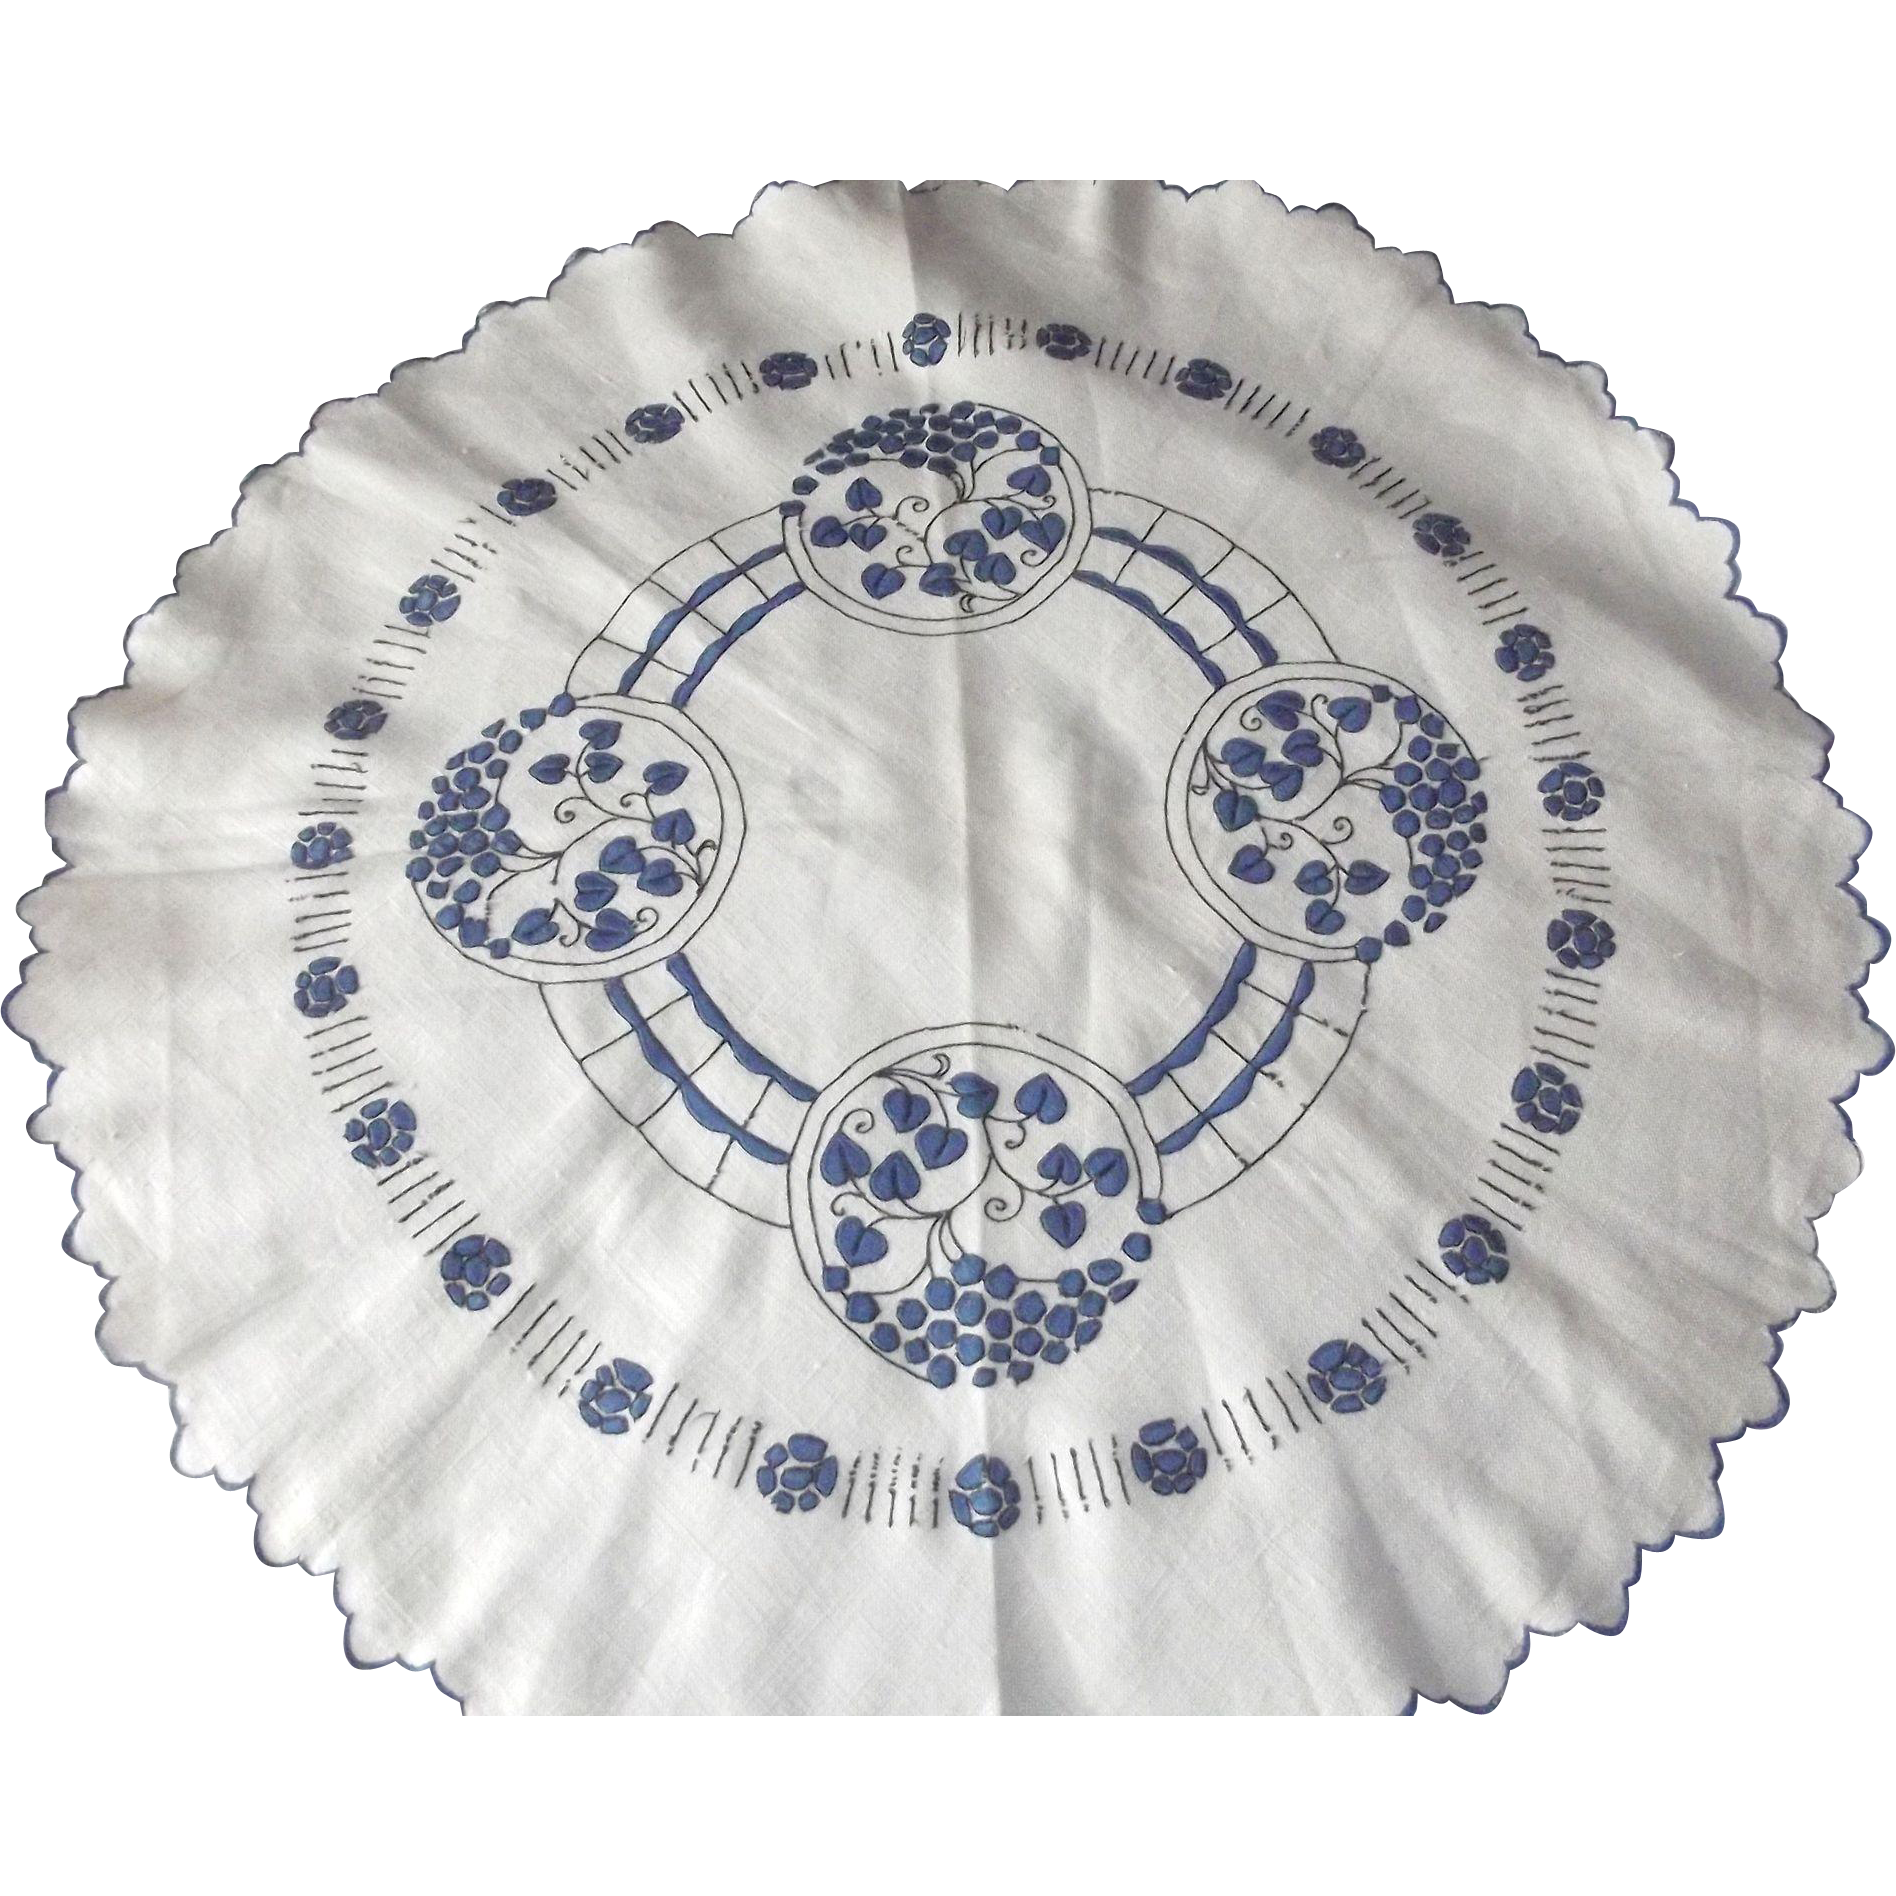 Blue and White Small Tablecloth and Couch or Chair Head Backing